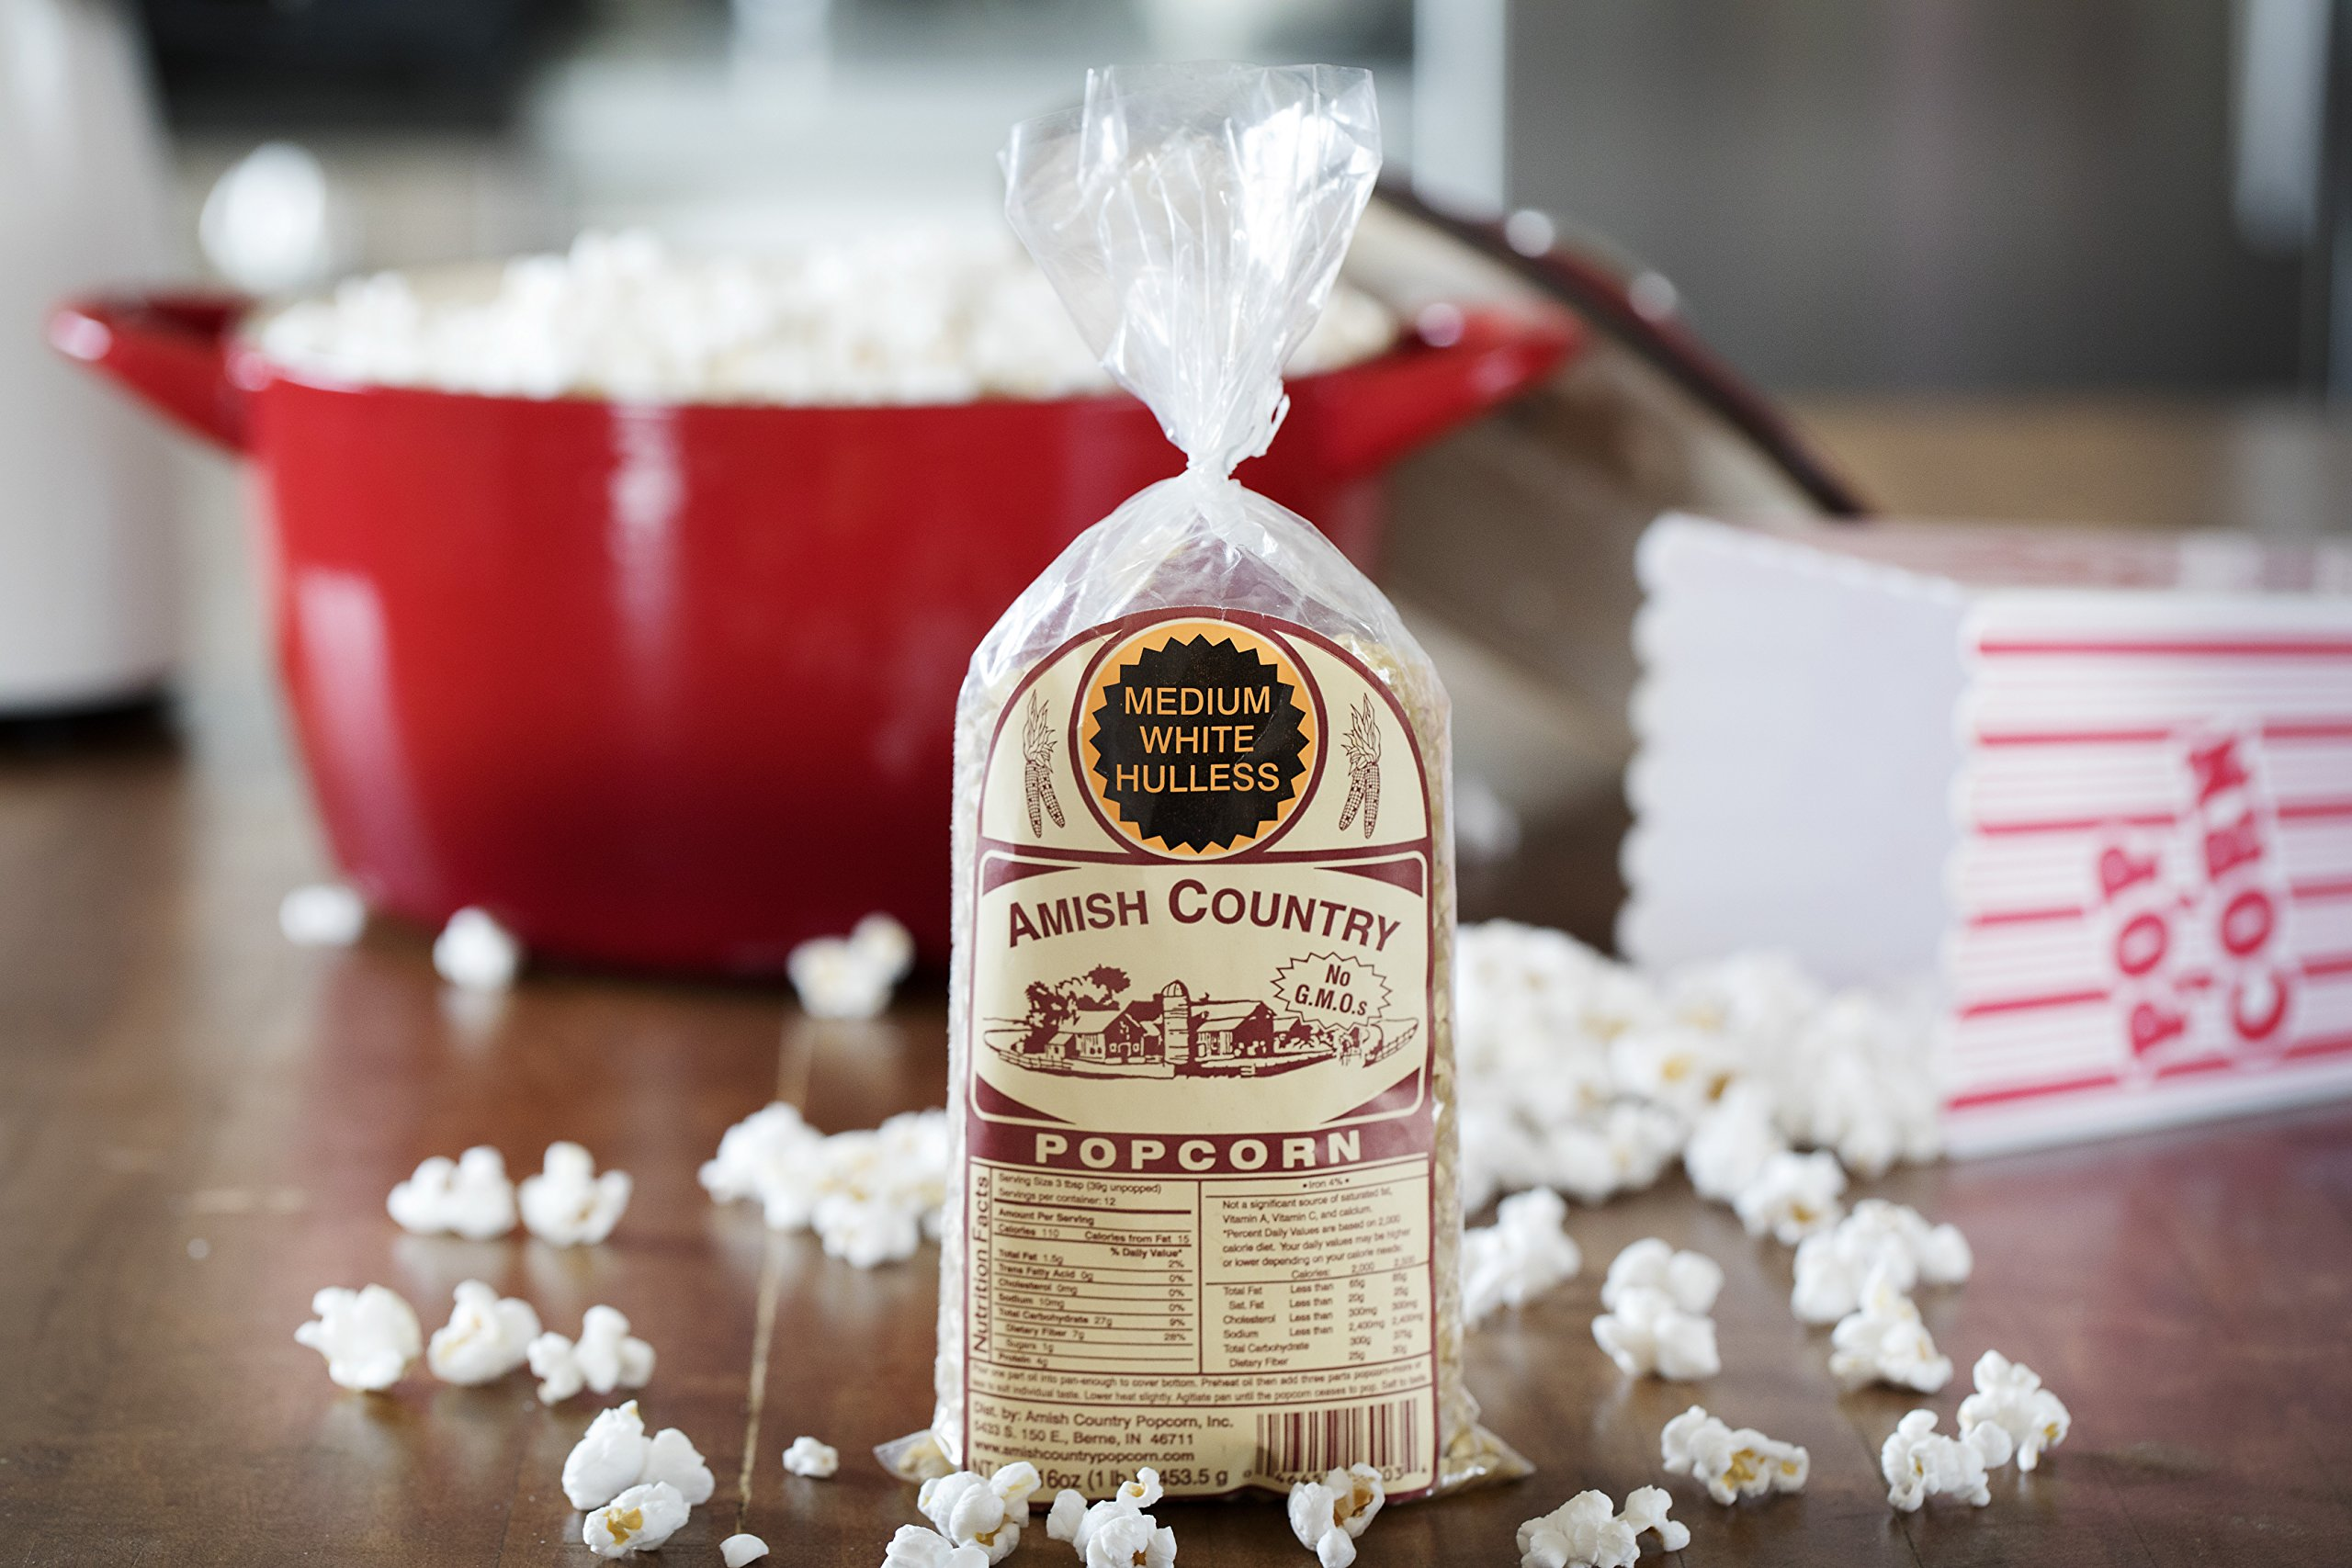 Amish Country Popcorn - Medium White Popcorn (1 Pound Bag) - Old Fashioned, Non GMO, Gluten Free, Microwaveable, Stovetop and Air Popper Friendly - Recipe Guide by Amish Country Popcorn (Image #4)